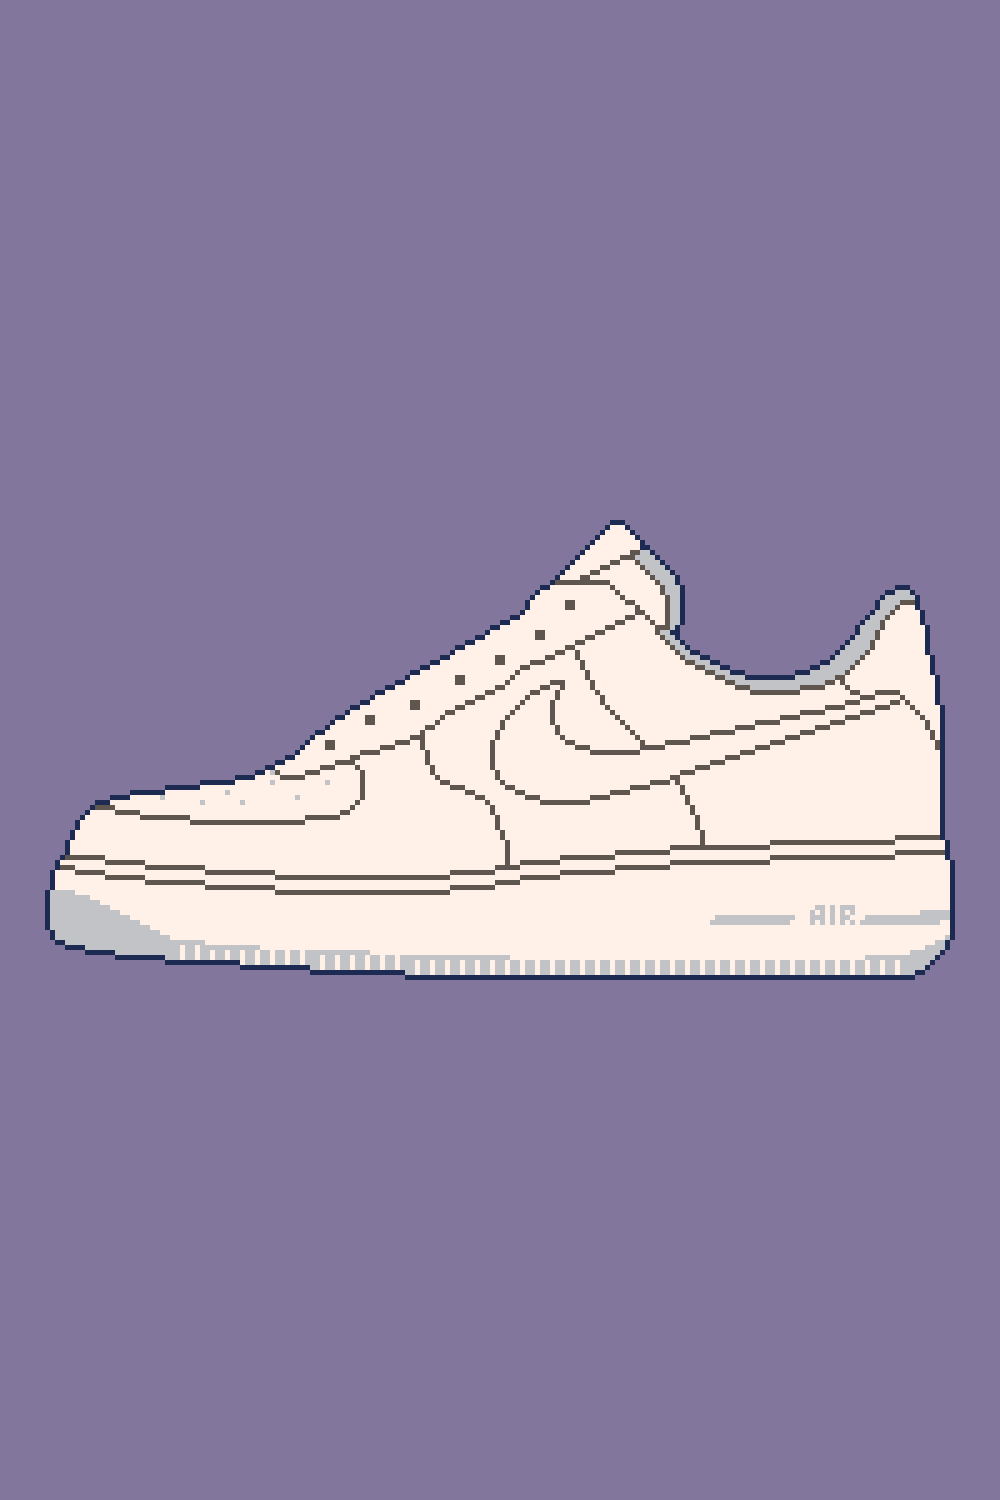 Nike Air Force 1 Pixel Art In 2020 Pixel Art Nike Wallpaper 1 Pixel